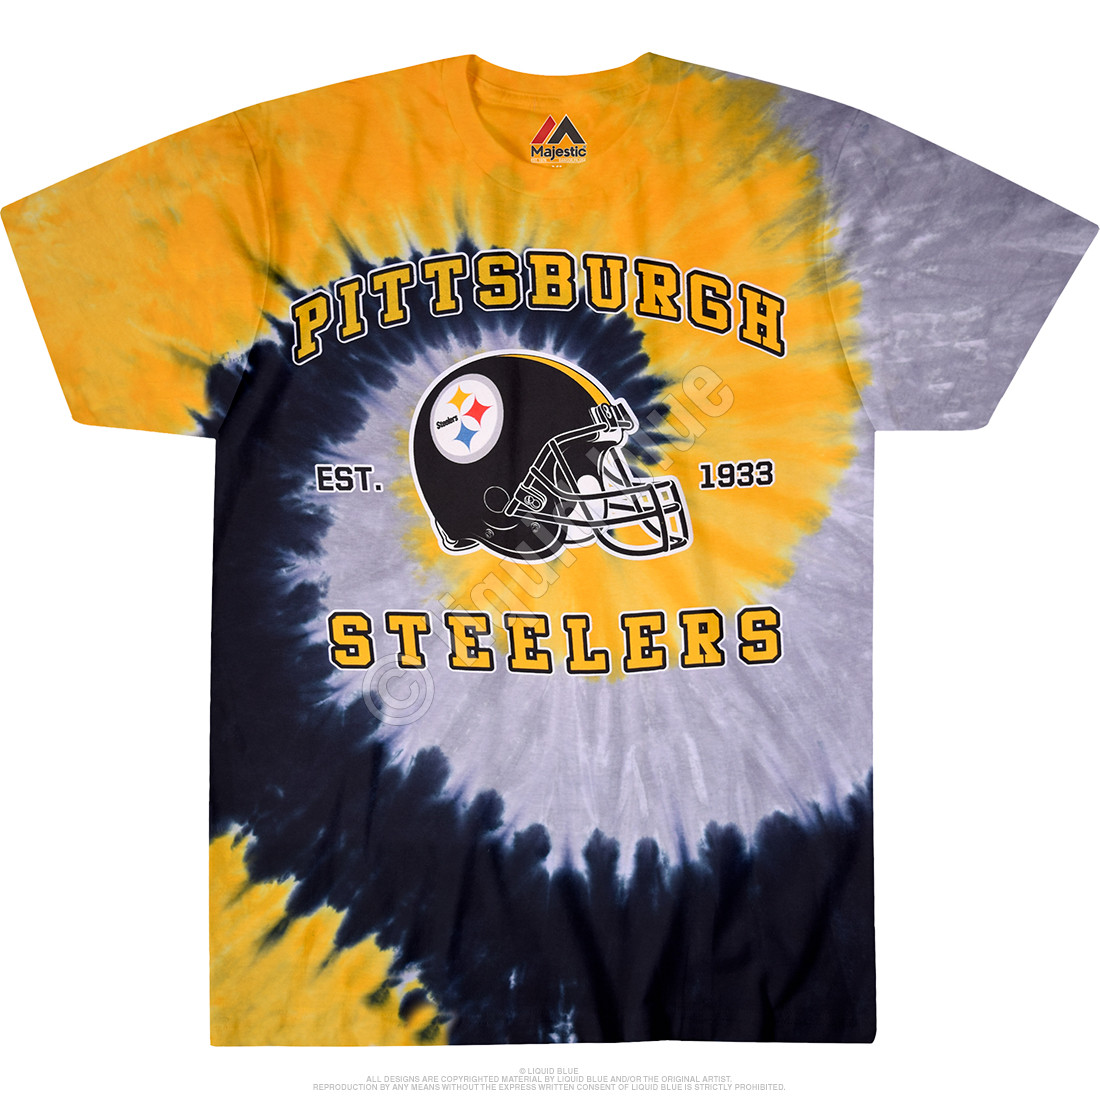 Nfl pittsburgh steelers spiral tie dye t shirt tee liquid blue for Custom tie dye shirts no minimum